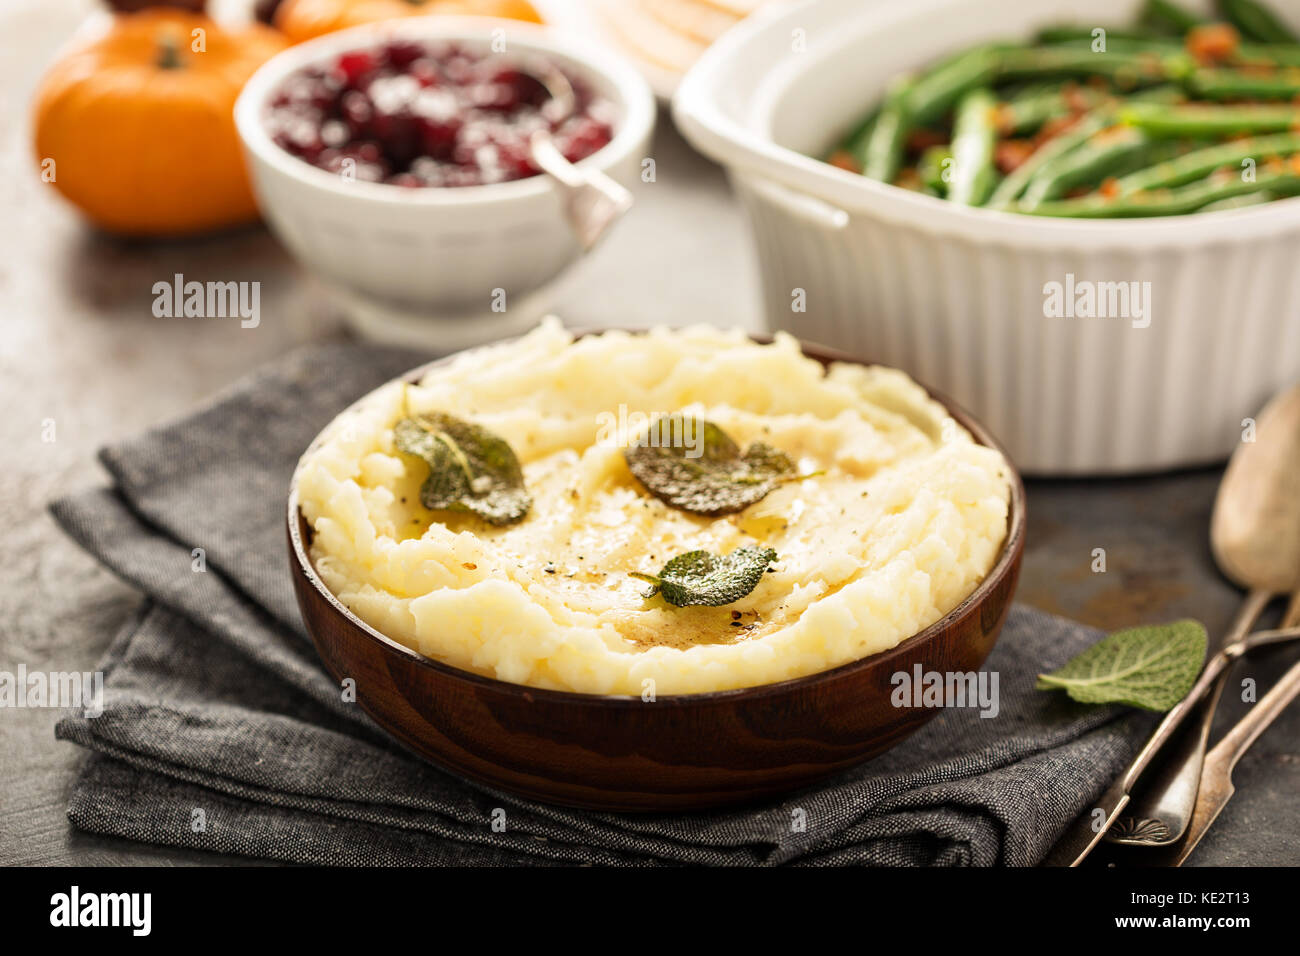 Mashed potatoes with butter and sage, side dish for Thanksgiving or Christmas dinner - Stock Image